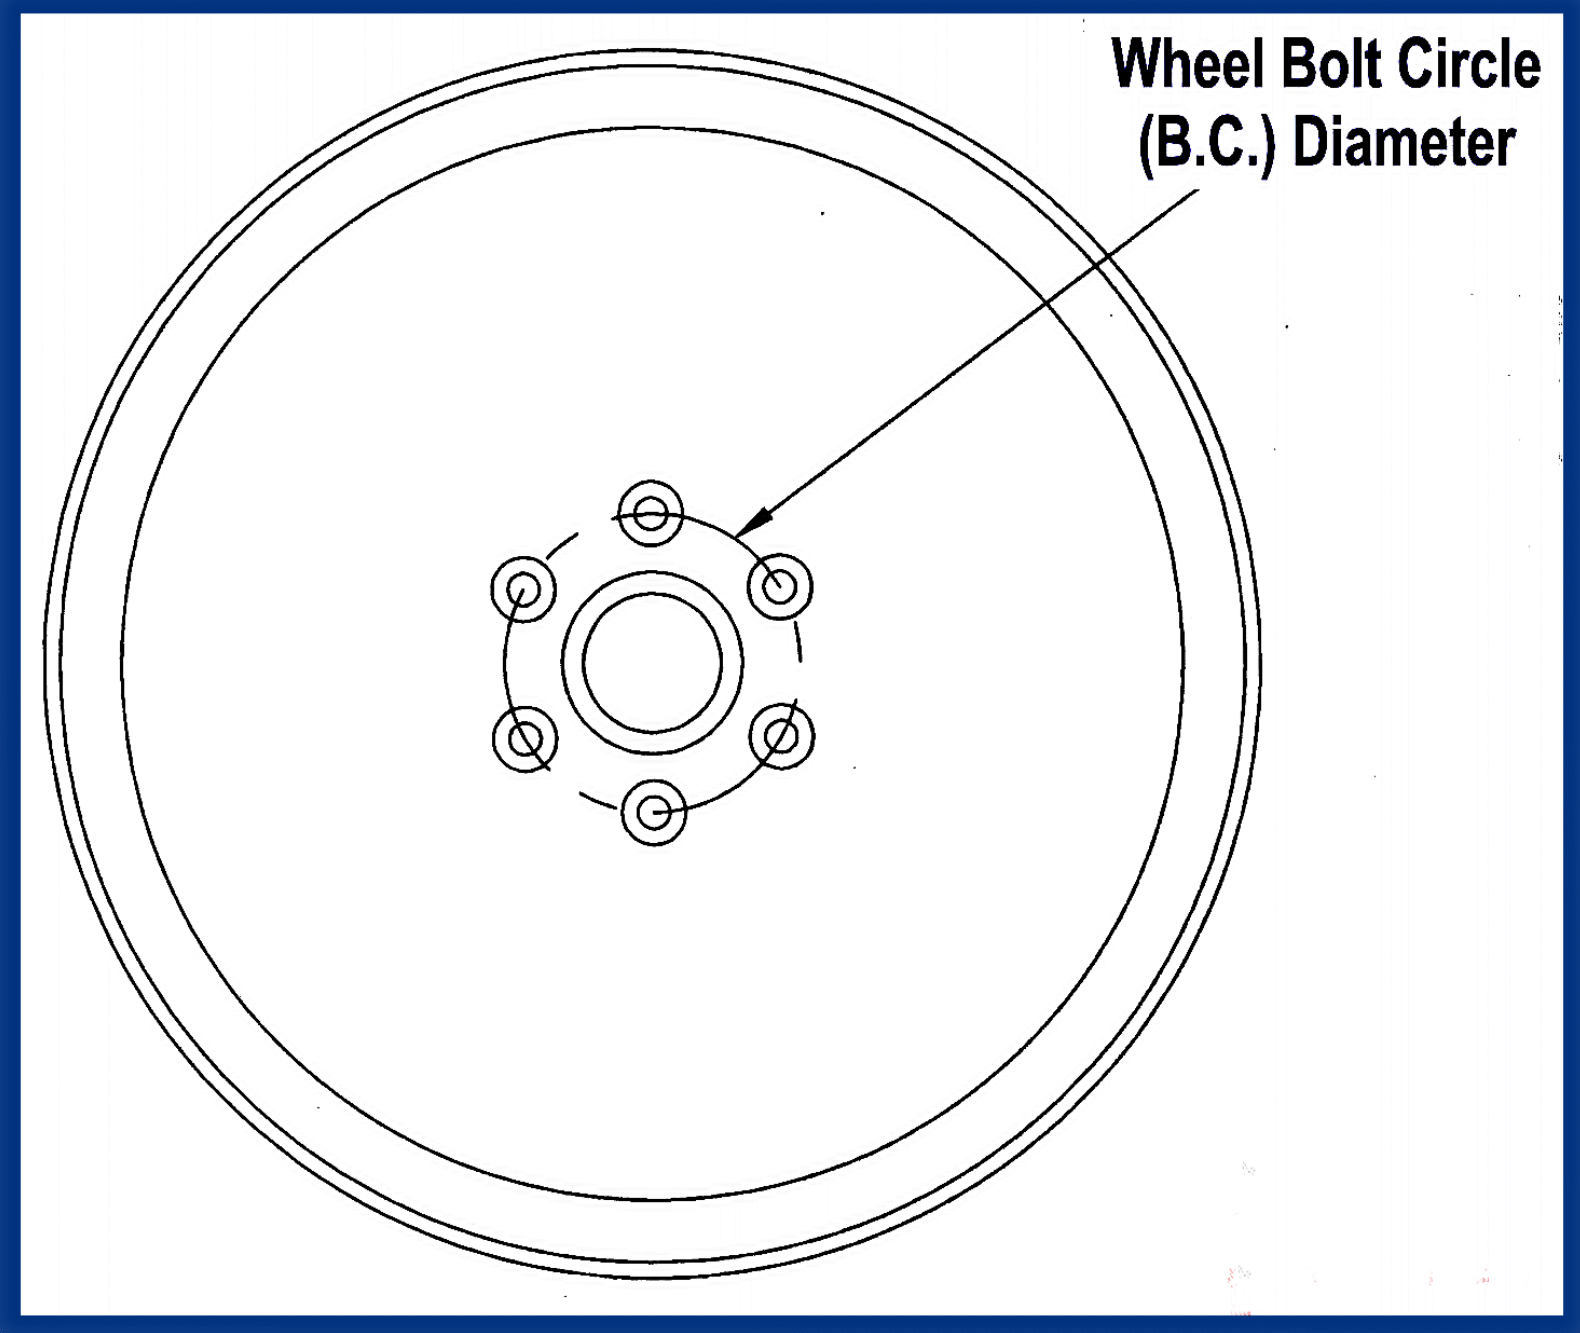 hight resolution of wheel bolt circle diameter drawing